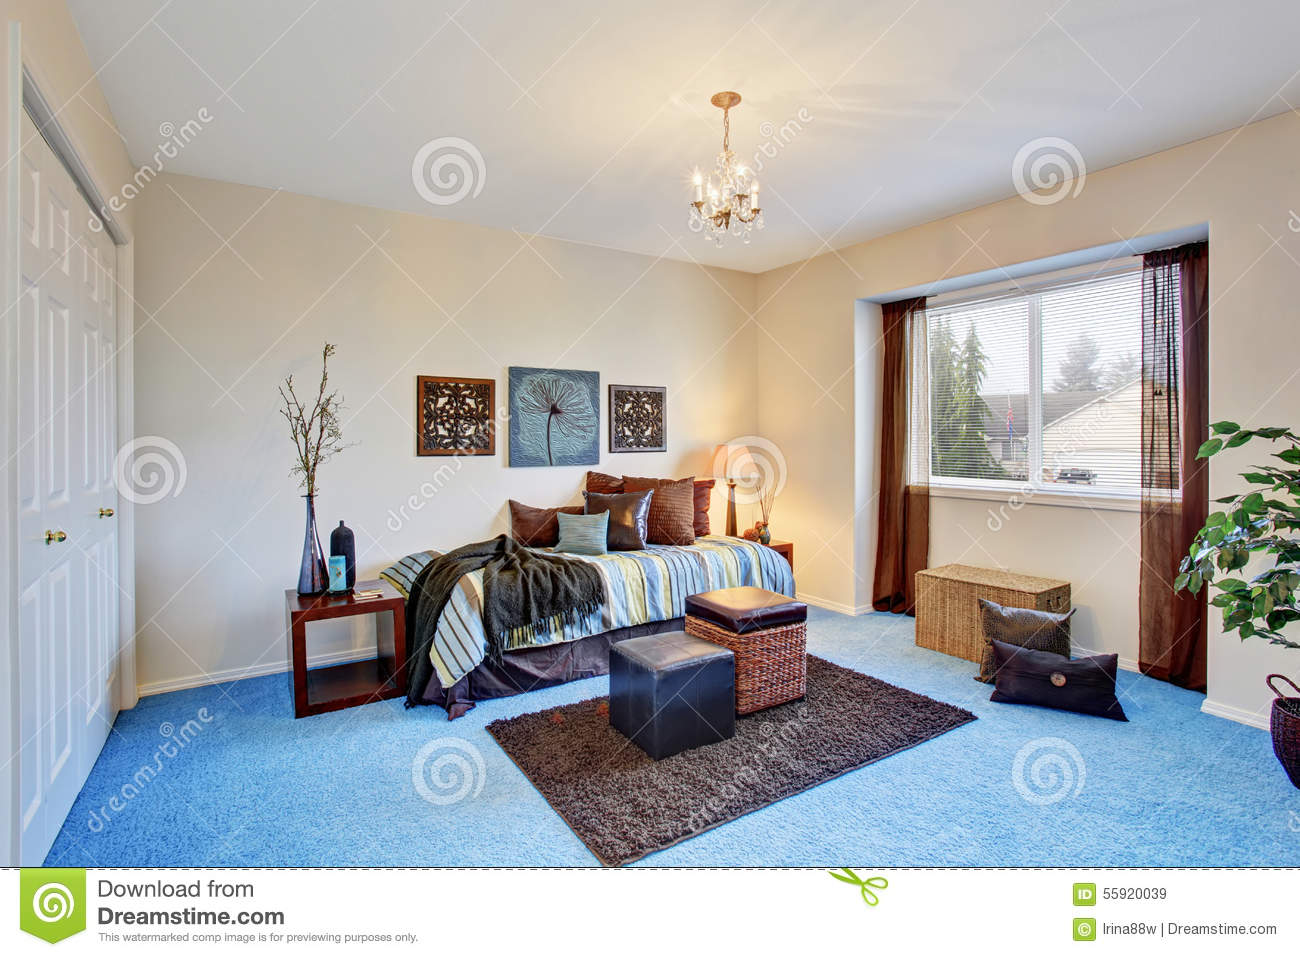 georgous living room with bright blue carpet stock image image of rh dreamstime com blue carpet living room decorating ideas